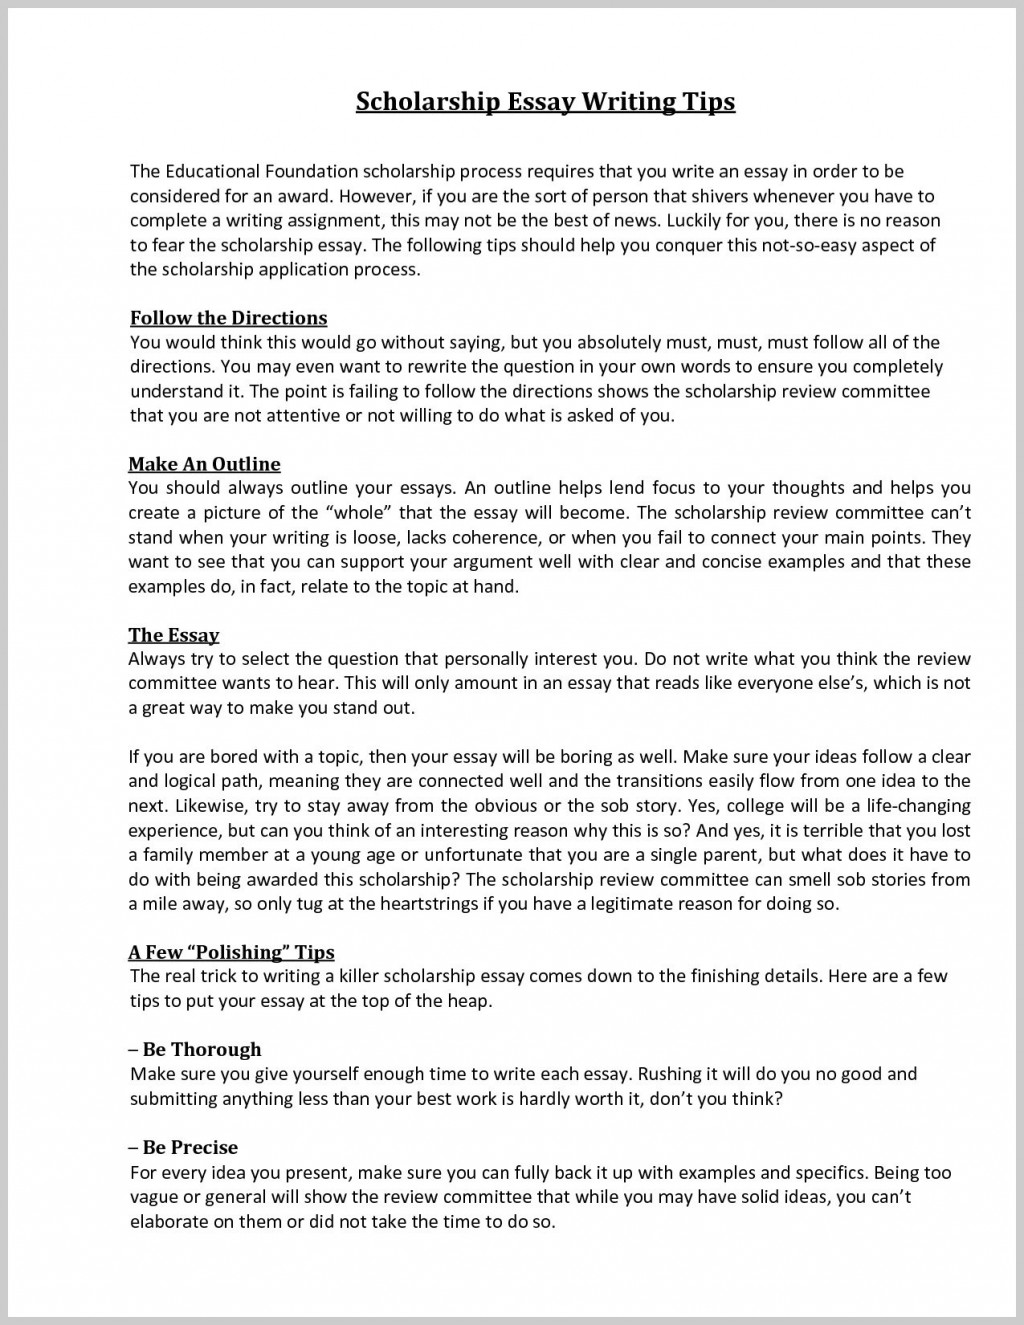 001 Showcase My Attitude Towards Money Essay Resume Ideas I Want To Write Essays For On Happiness Brave New W Writing Astounding Reddit People's Illegal Large